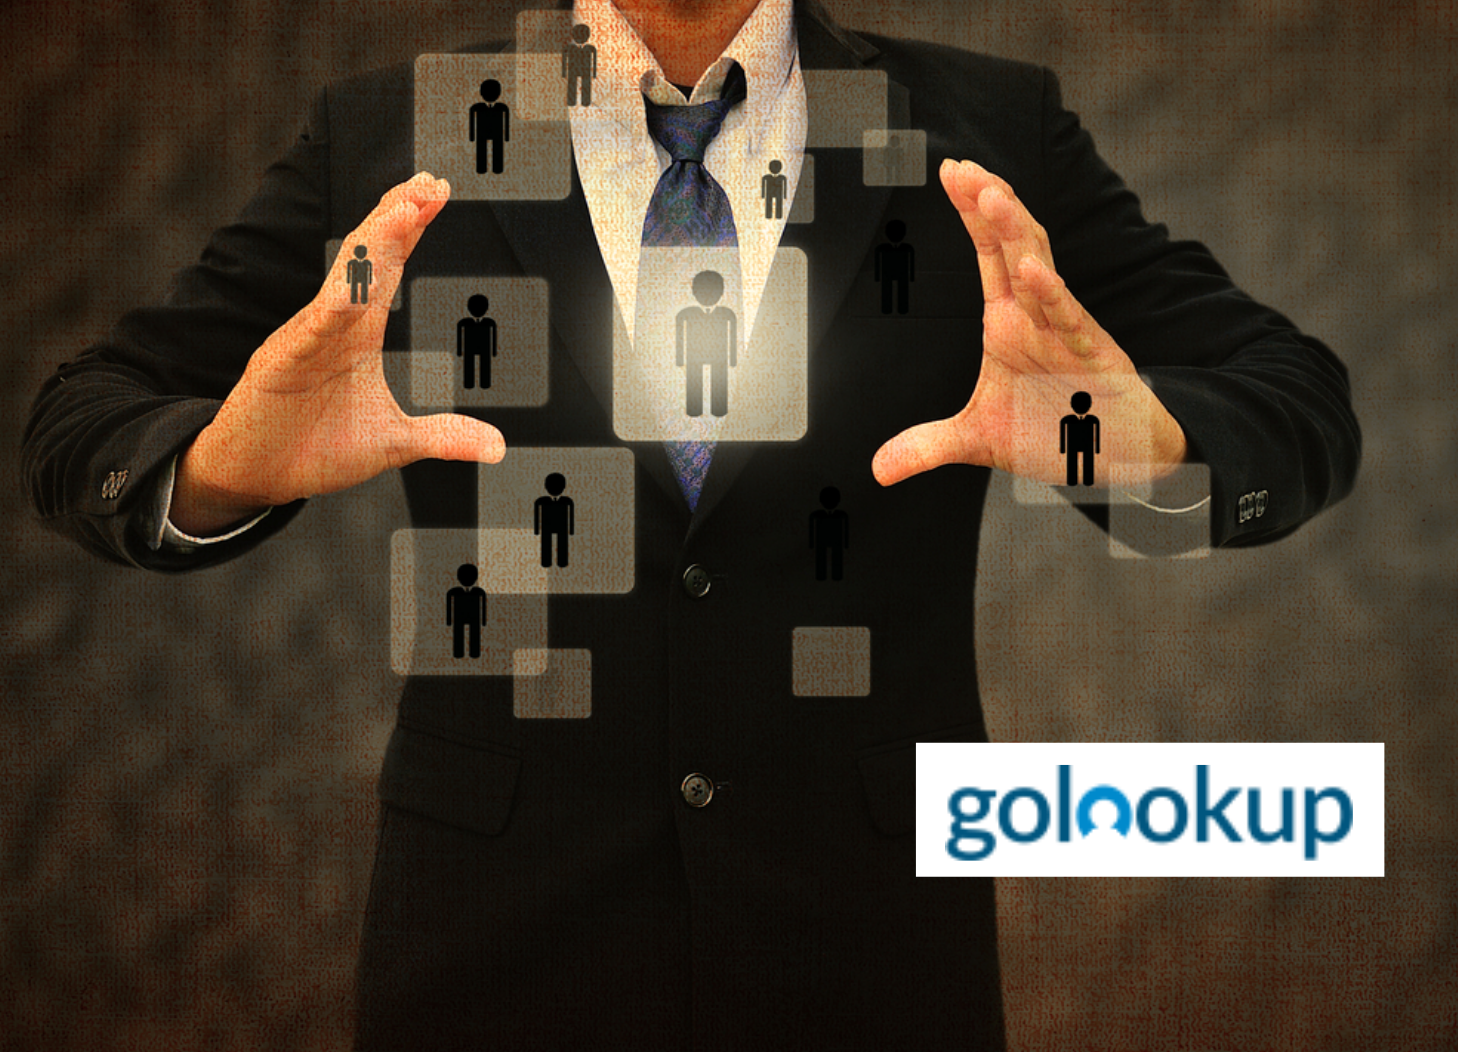 GoLookUp Review: 5 Ways Executives Can Make Smarter Business Decisions